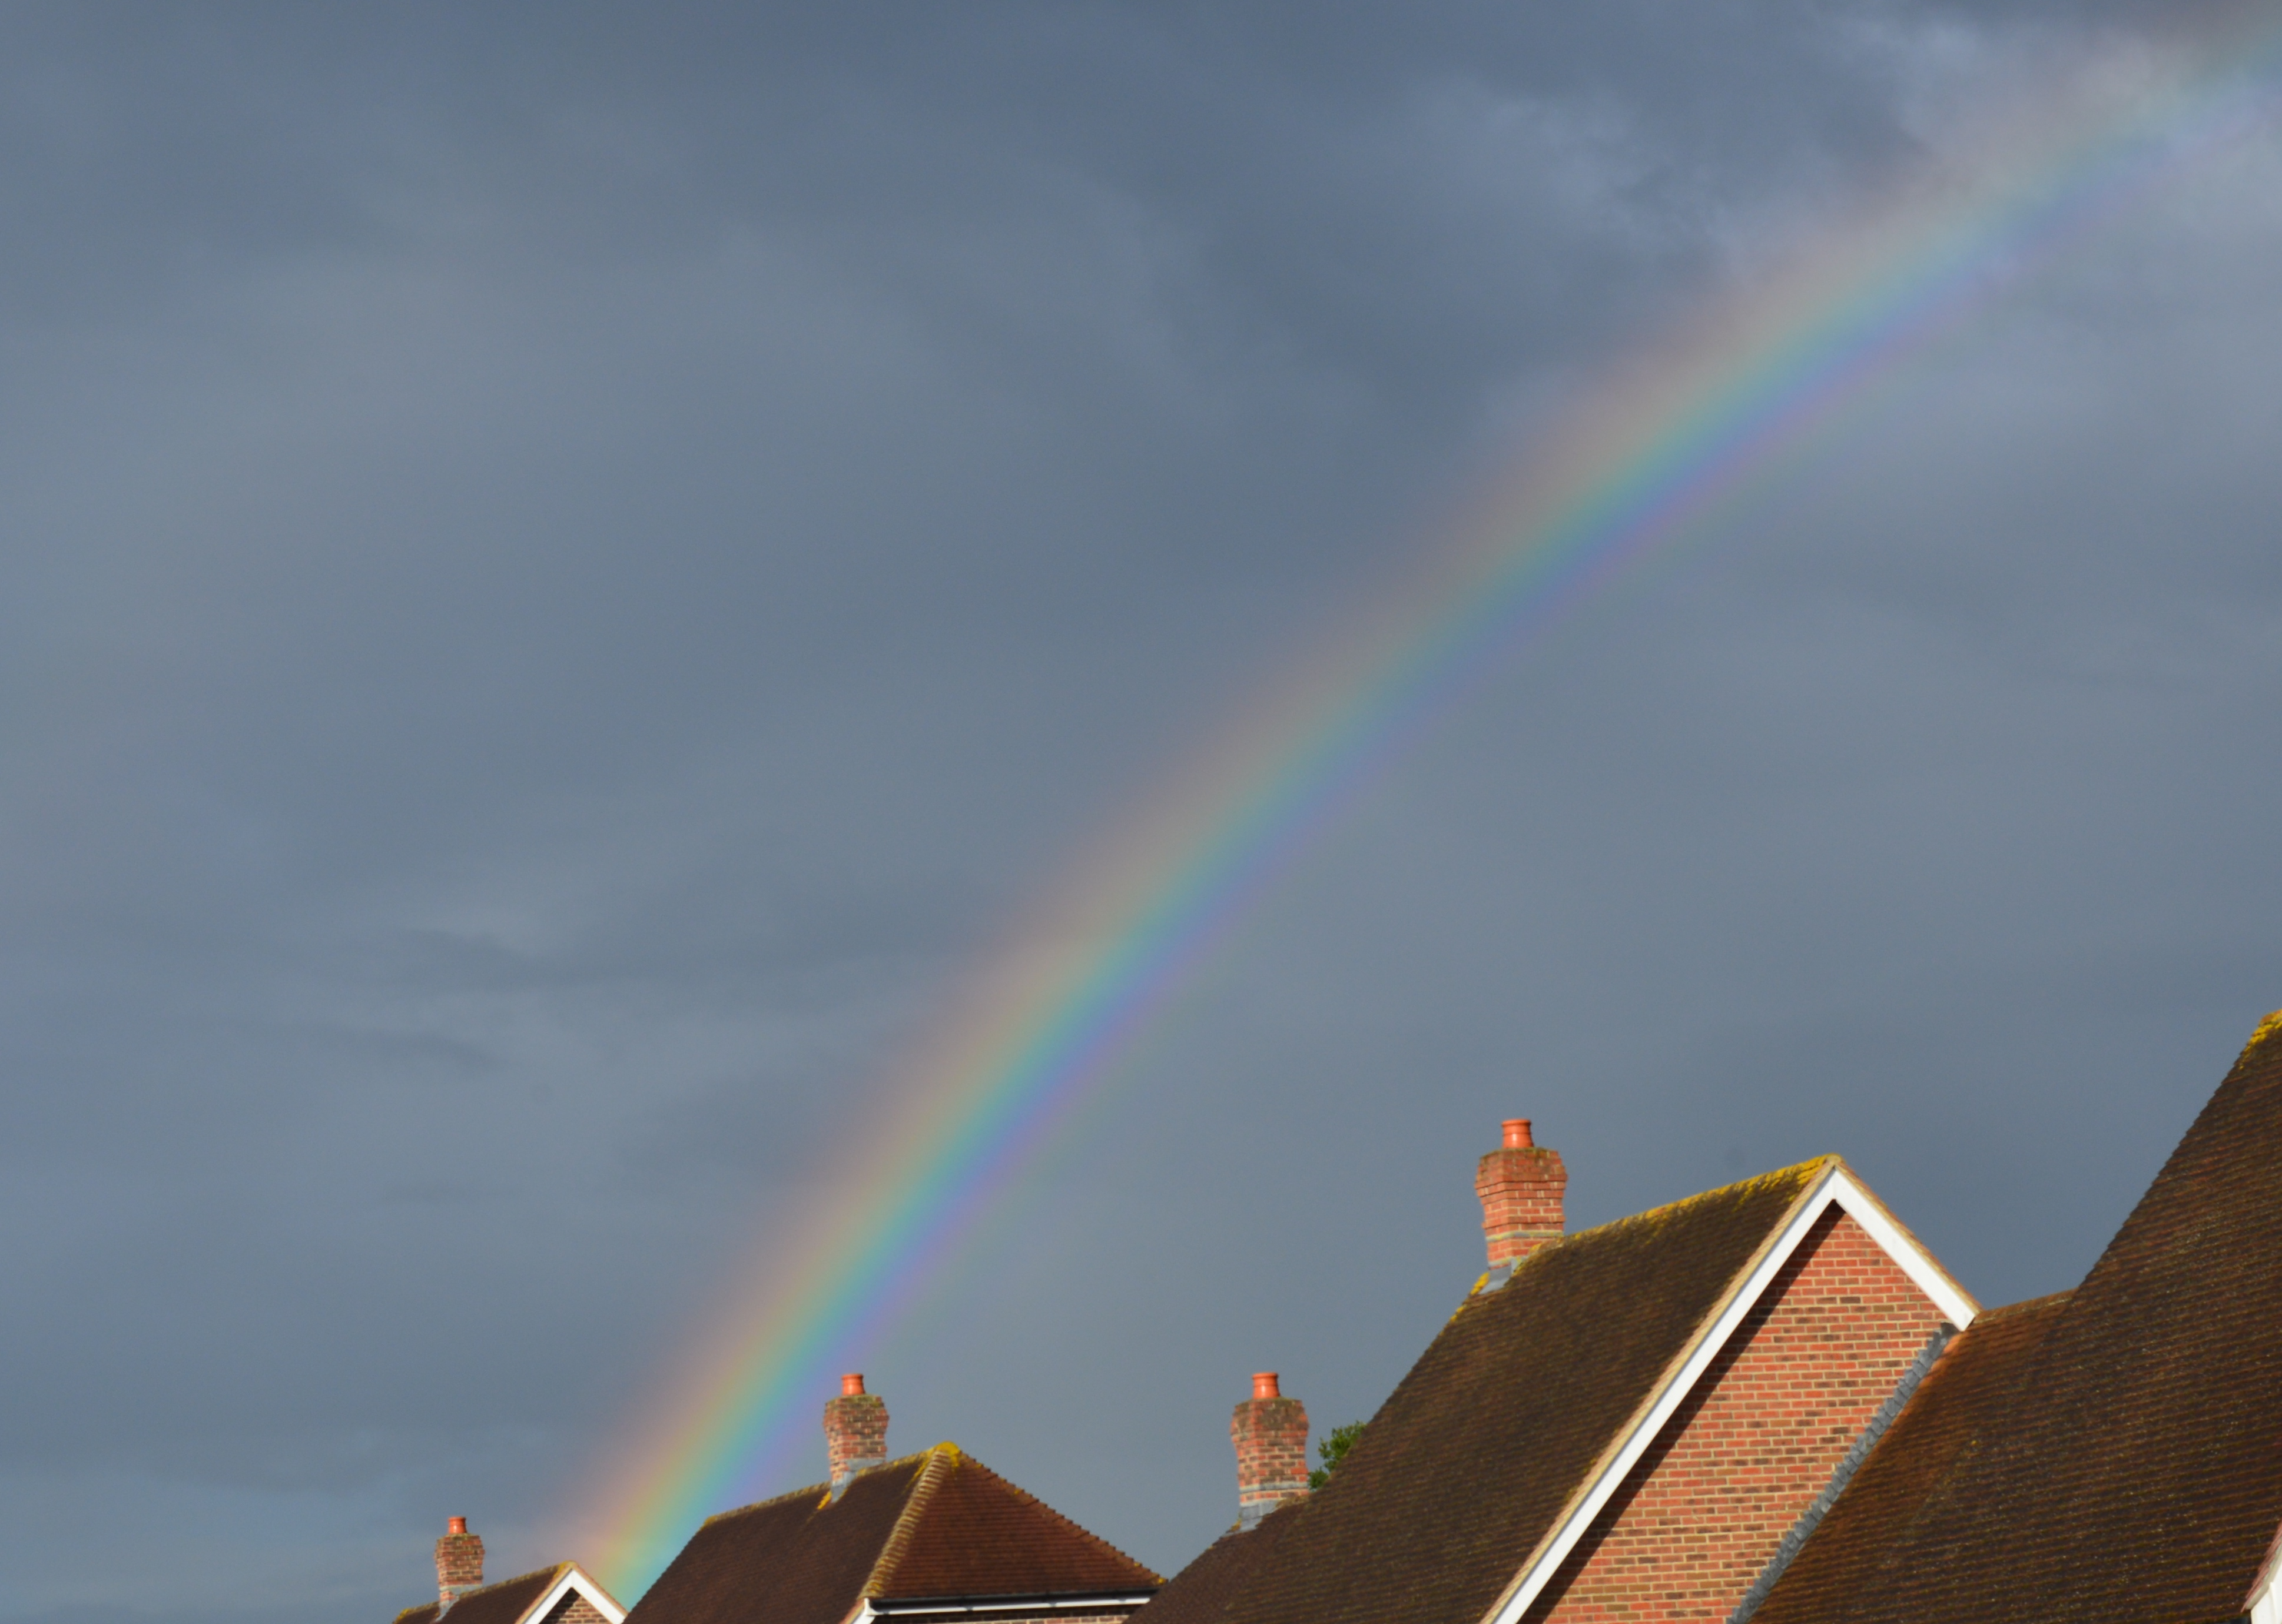 Colours of the rainbow - rainbow in the sky #scienceforkids